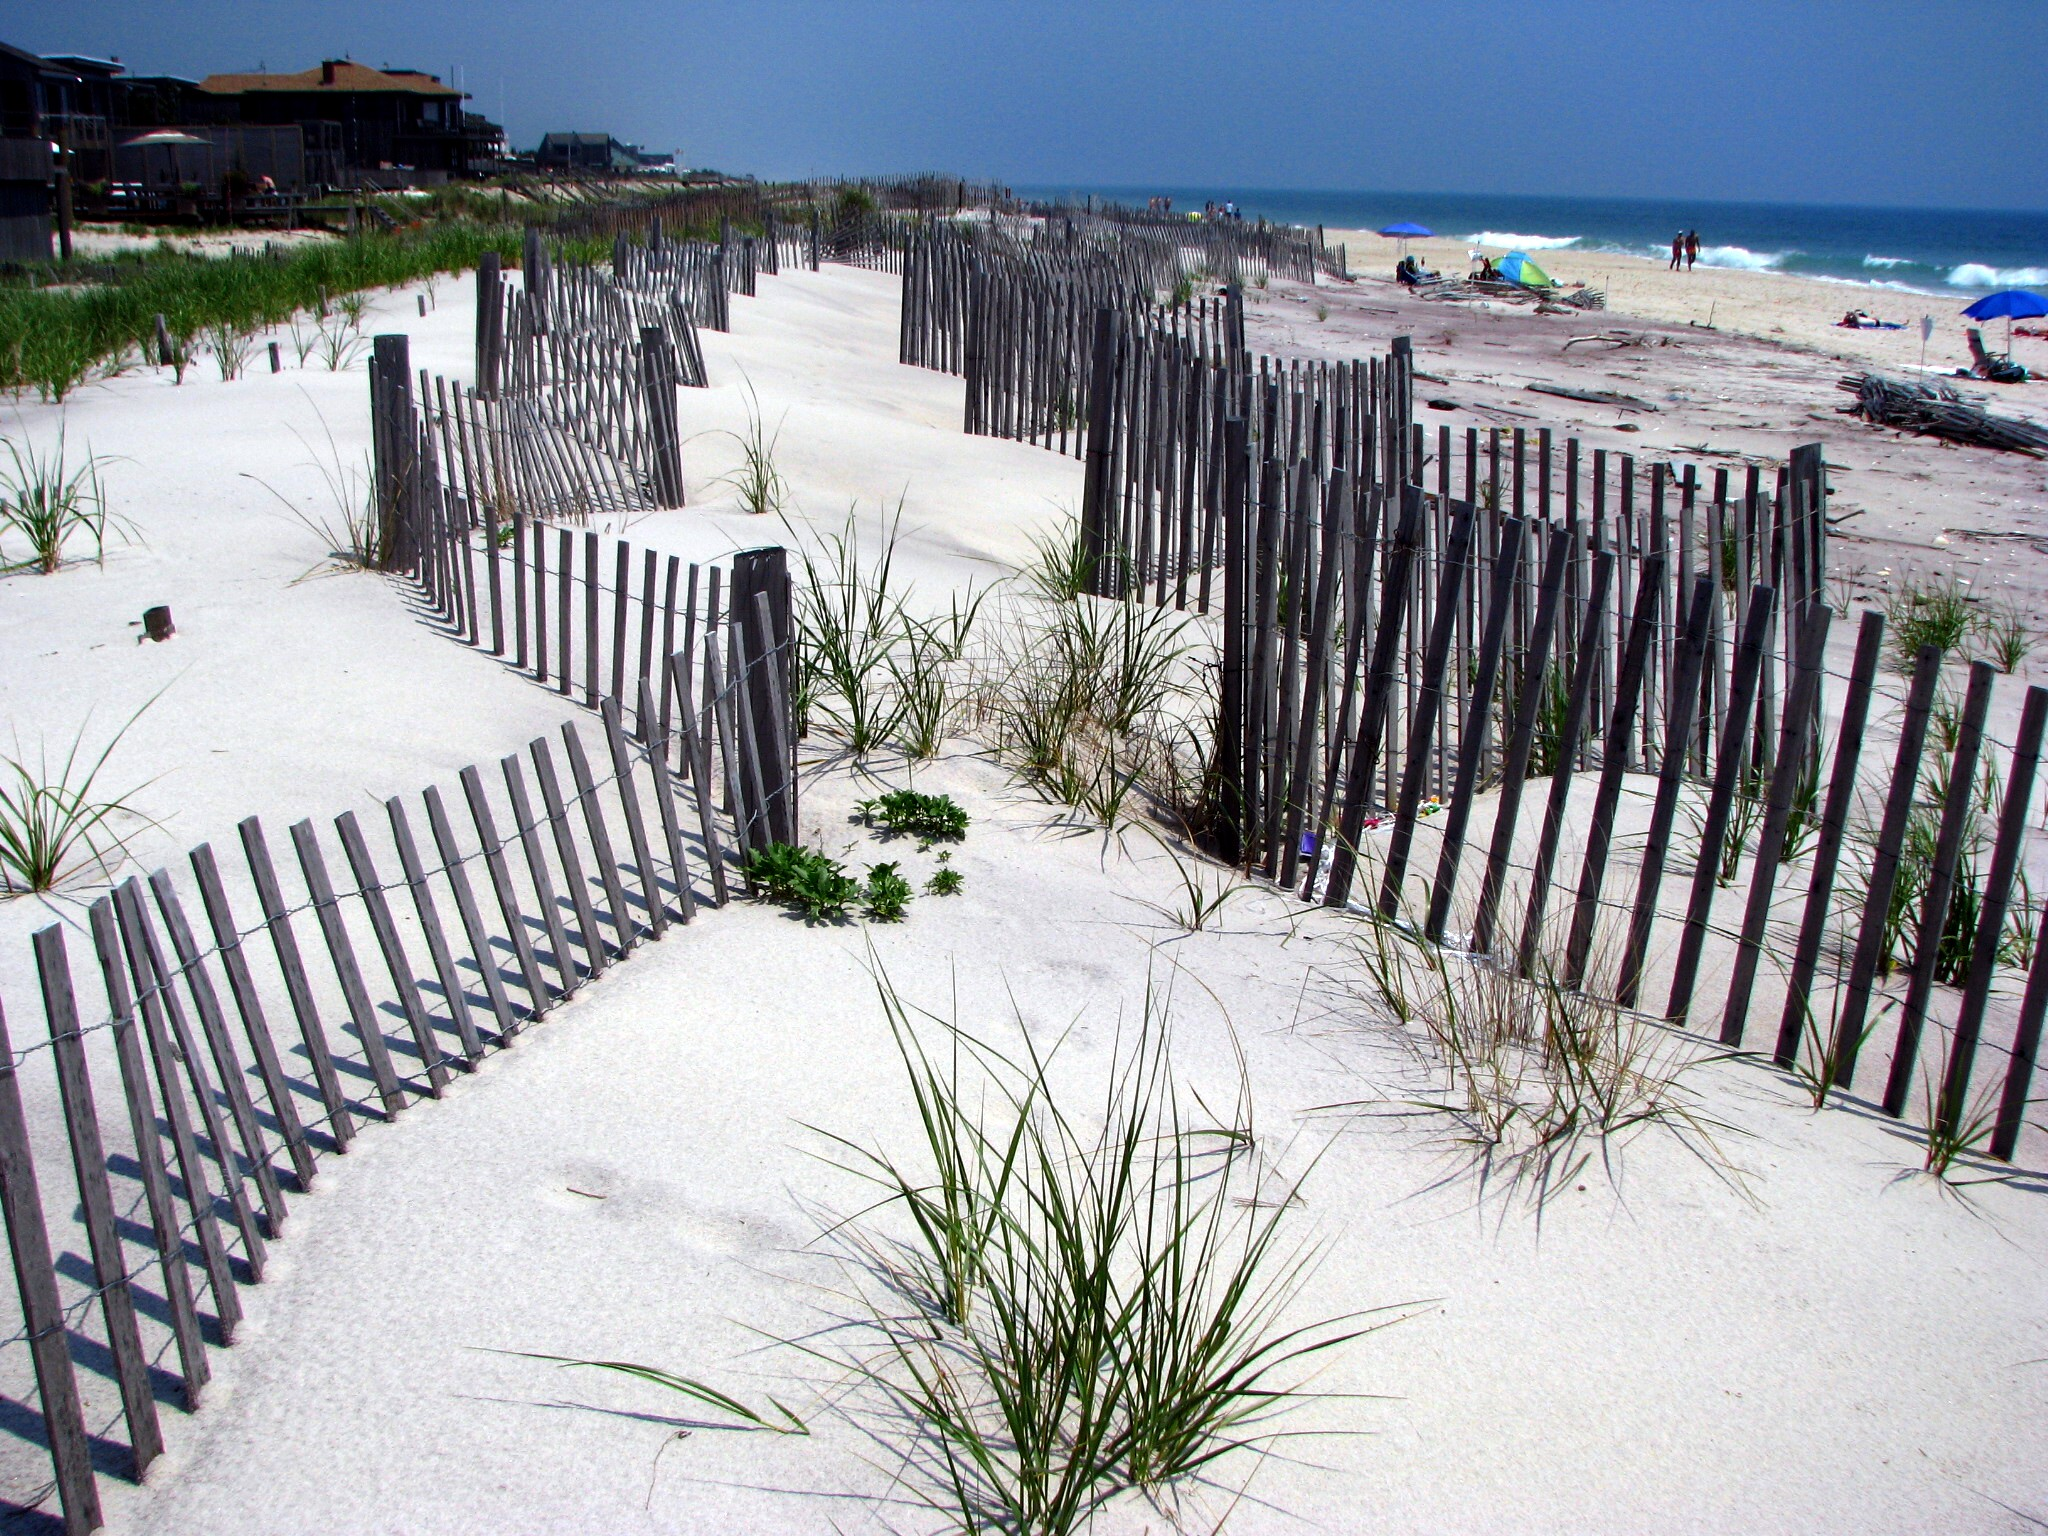 The Fire Island Pines Fire Sale: The $18 Million Purchase of New York's Gay Haven